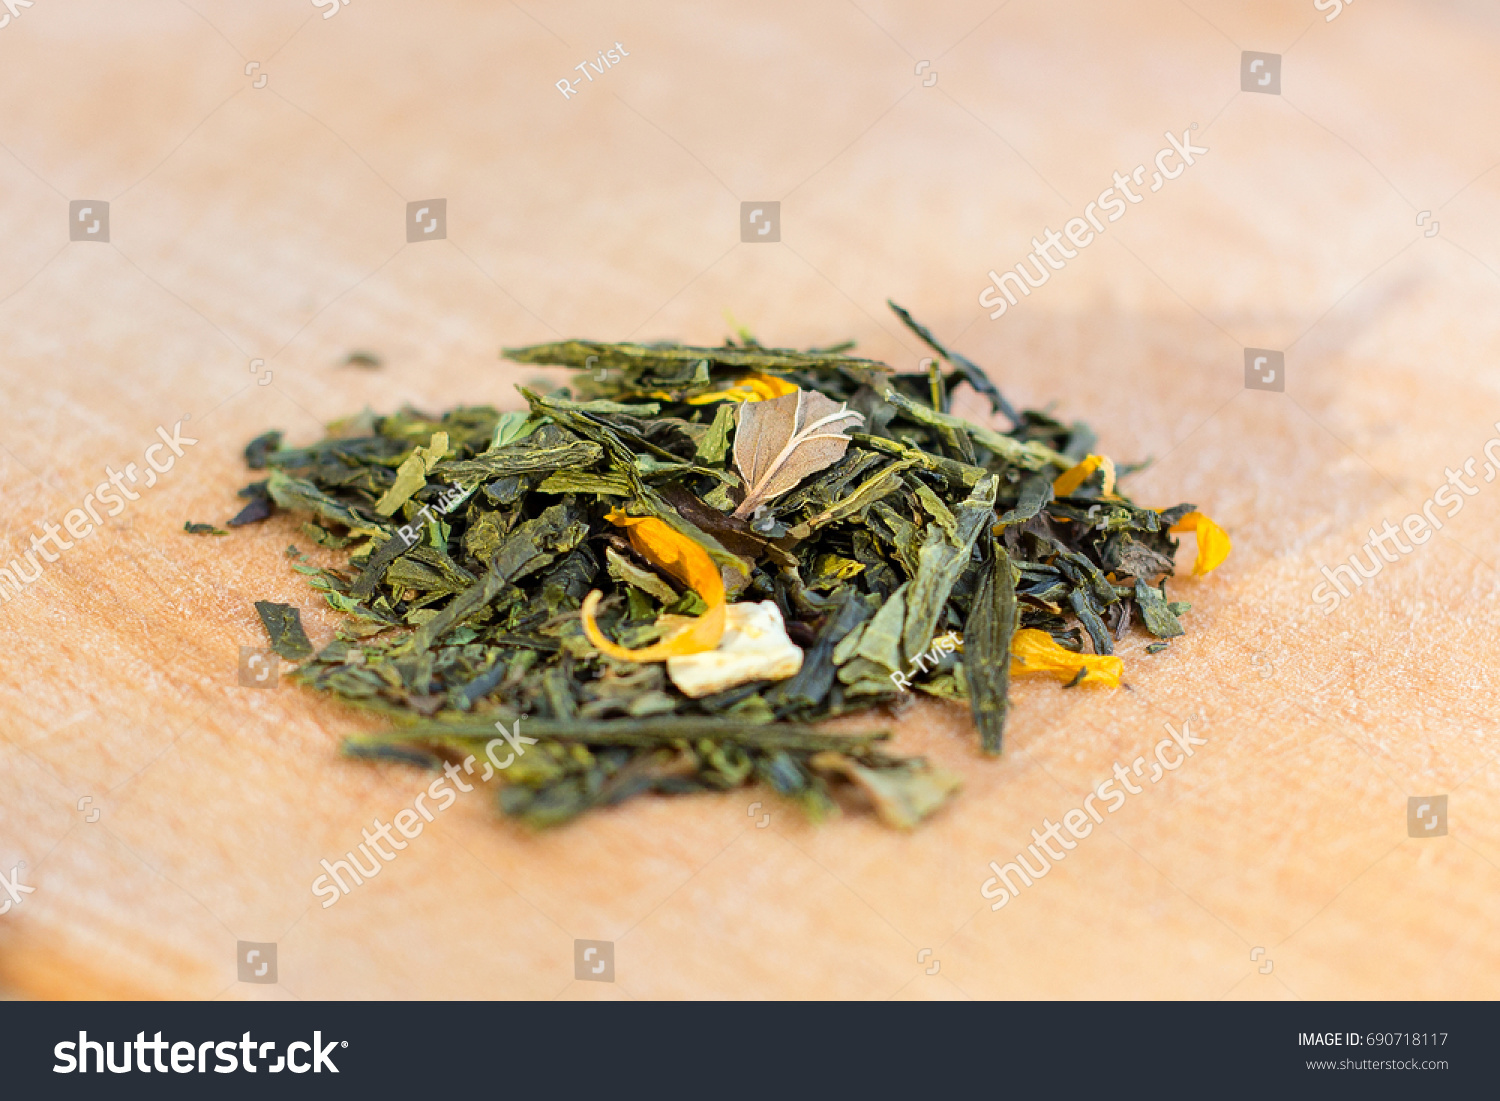 Macro photo tea composition heap dried stock photo 690718117 macro photo of tea the composition of the heap of dried hibiscus flower located on izmirmasajfo